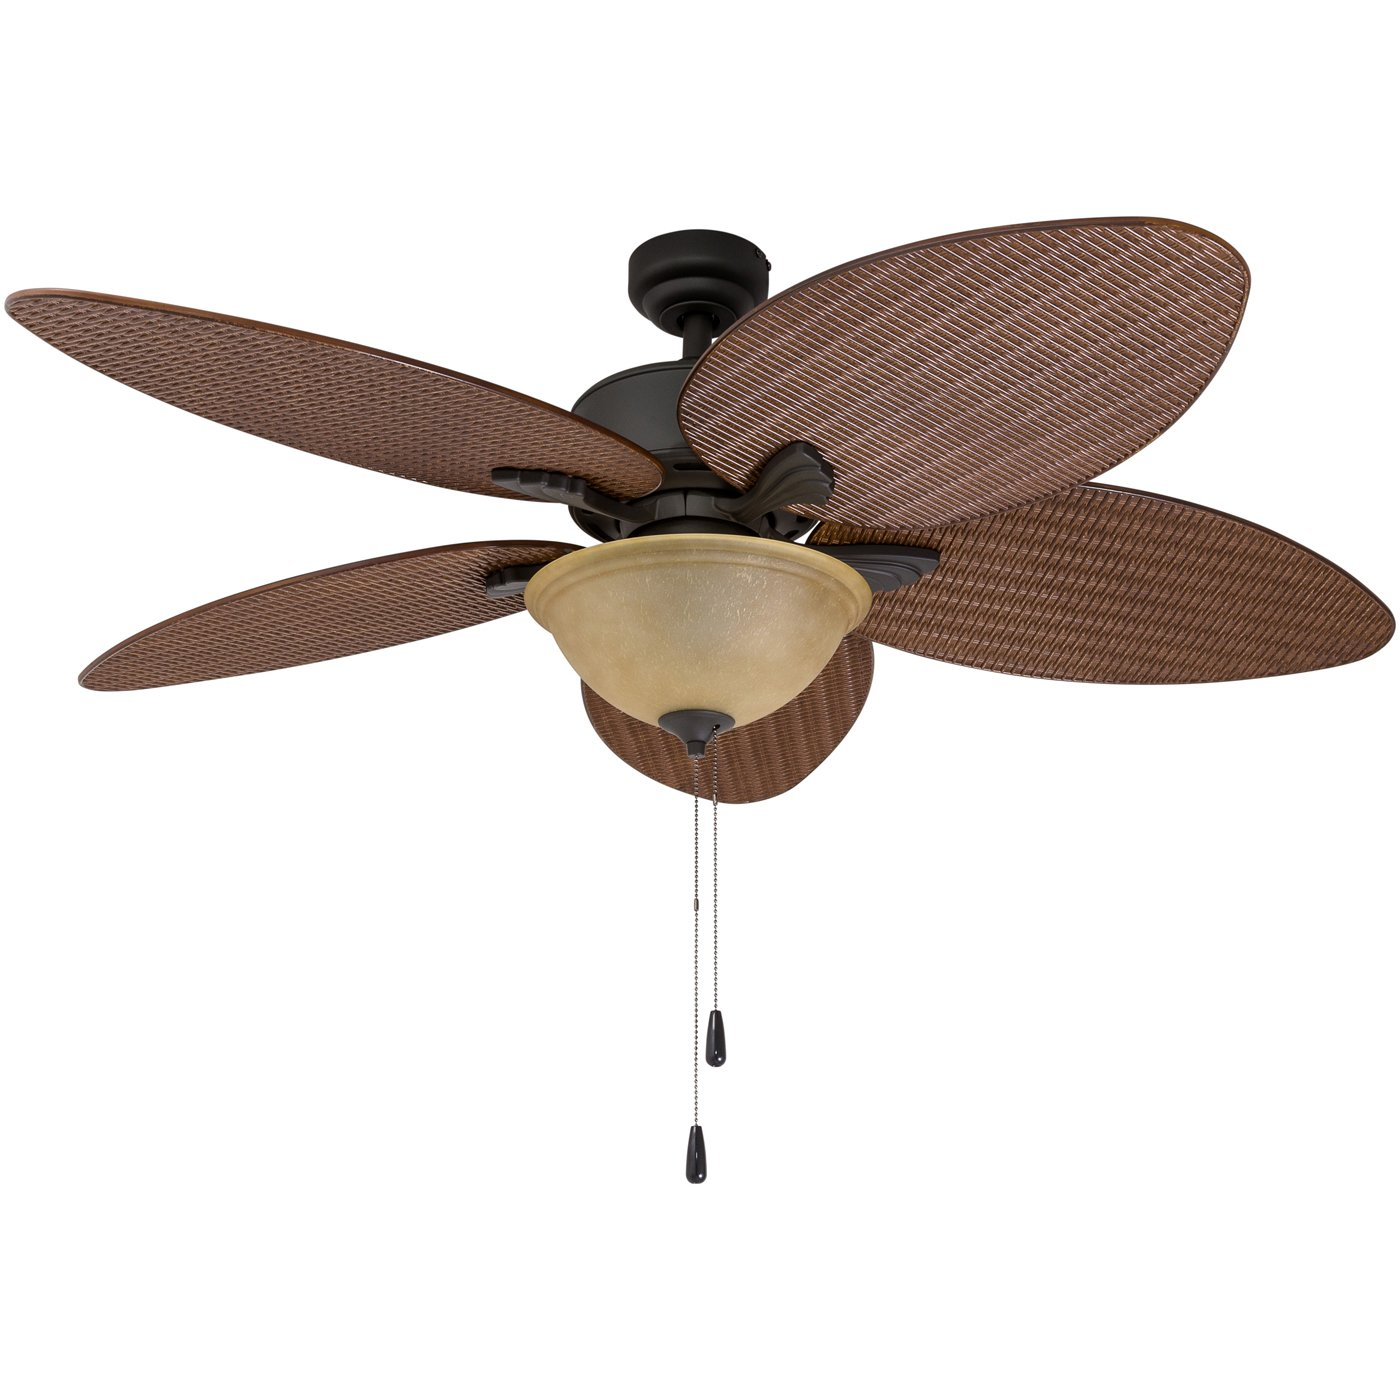 Prominence Home 01 Palm Valley Tropical Ceiling Fan with